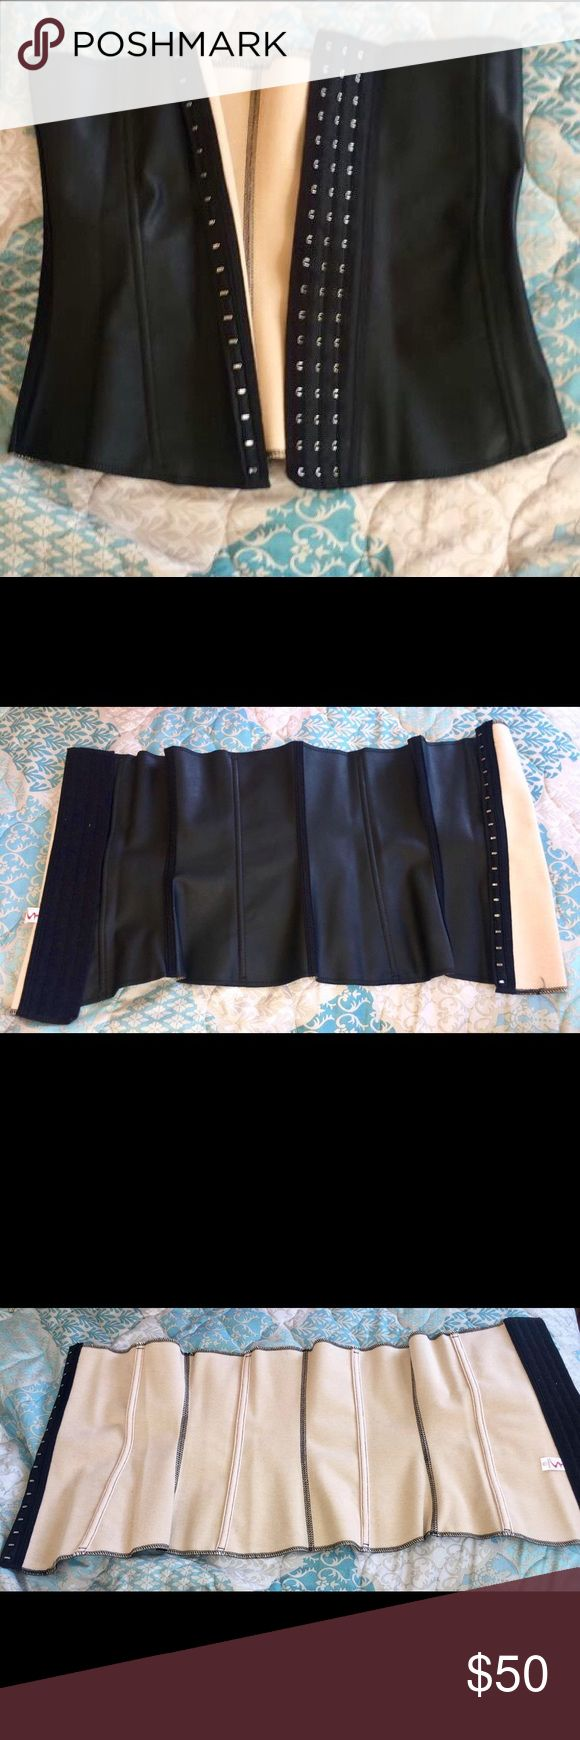 Black Silhouette Girdle/Corset/Waist Slimmer Black Silhouette Girdle/Corset/Waist Slimmer. Brand new, never been used, comes with their own bag. Sizes available M, L. Girdle is infused with aromatherapy to reduce hunger. Girdle has three positions in where to close. Girdle helps with waist slimming and good posture and with medical permission it could be used after pregnancy or surgery to help back or abdominal region. Peter Pan Lenceria-Peru Intimates & Sleepwear Shapewear